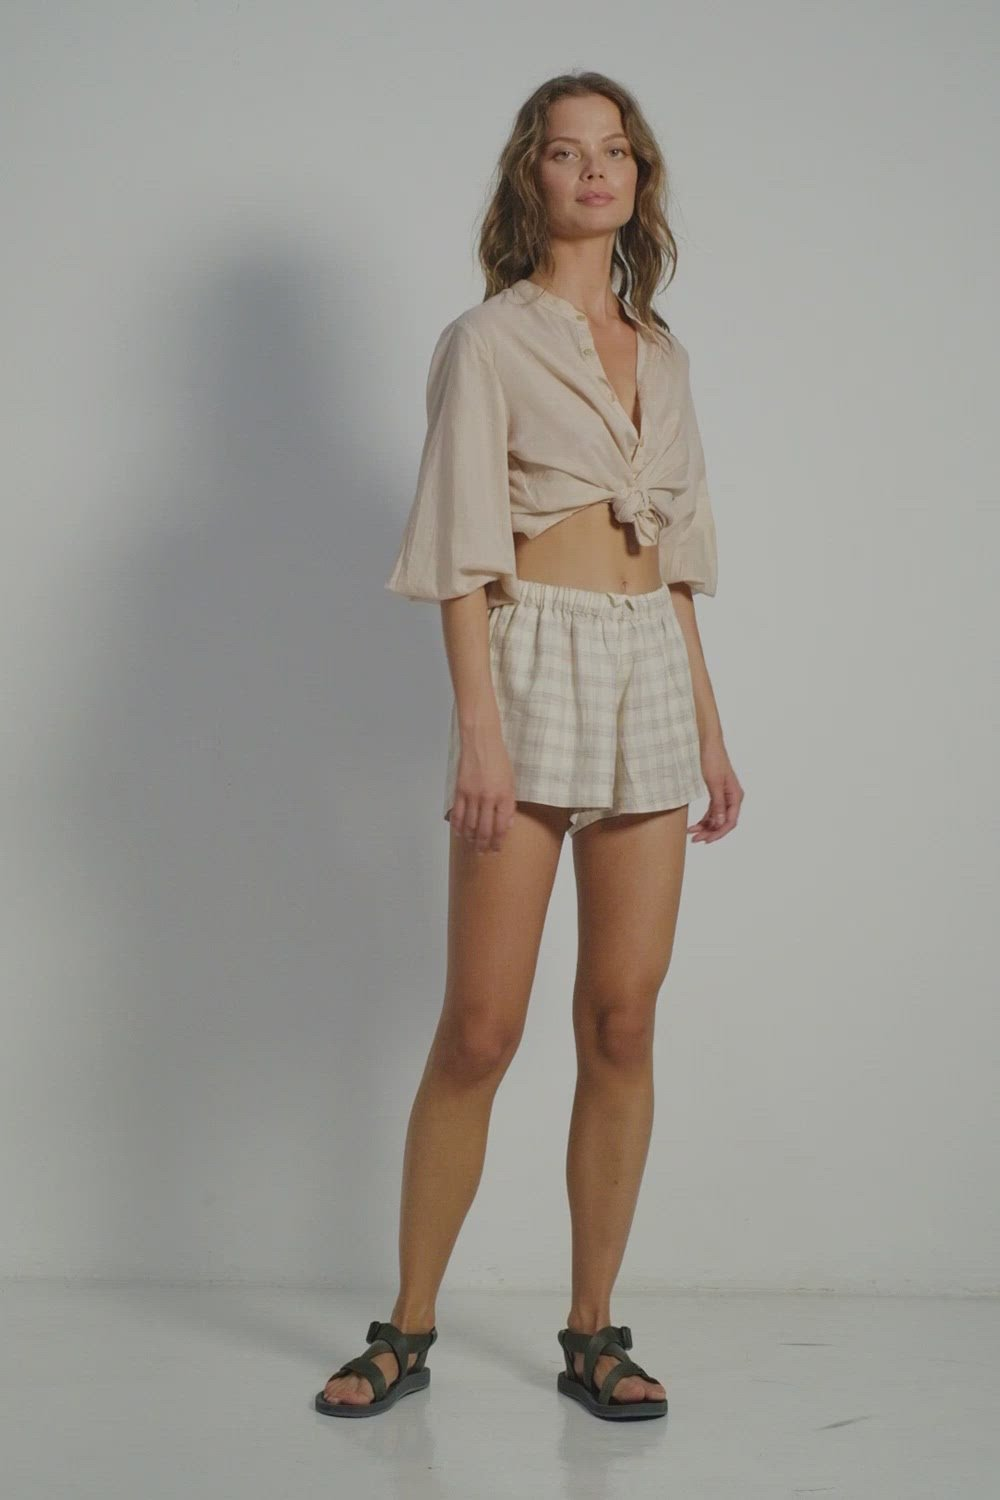 A woman wearing summer look by Lilya: light beige cotton blouse and check cotton summer shorts